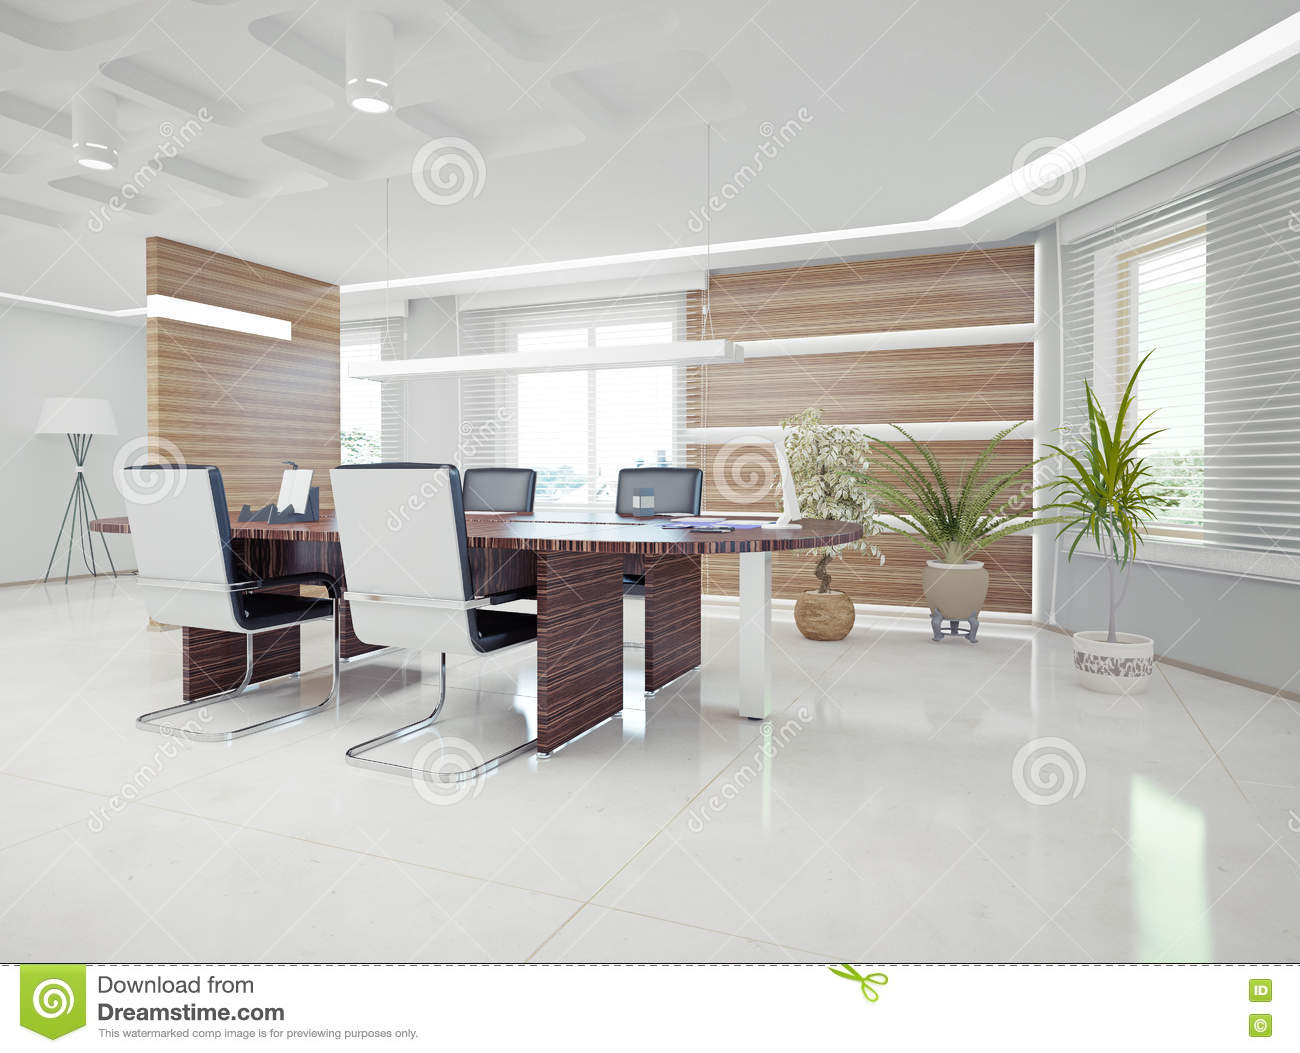 Design Interieur Concept Modern Office Interior Stock Illustration Illustration Of